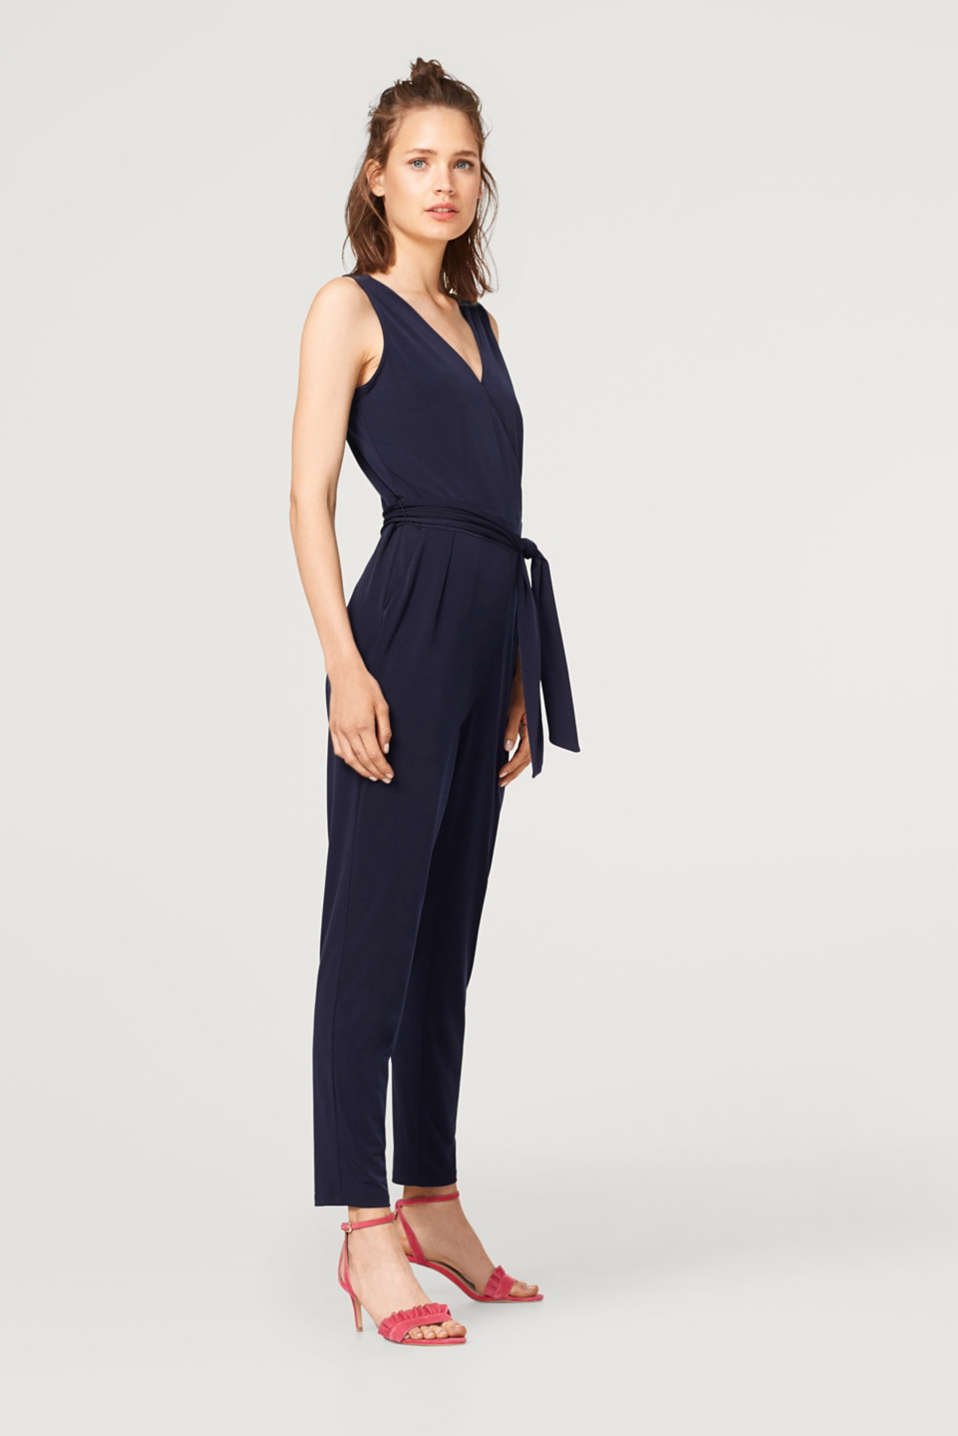 Stretch jersey jumpsuit with a lace back